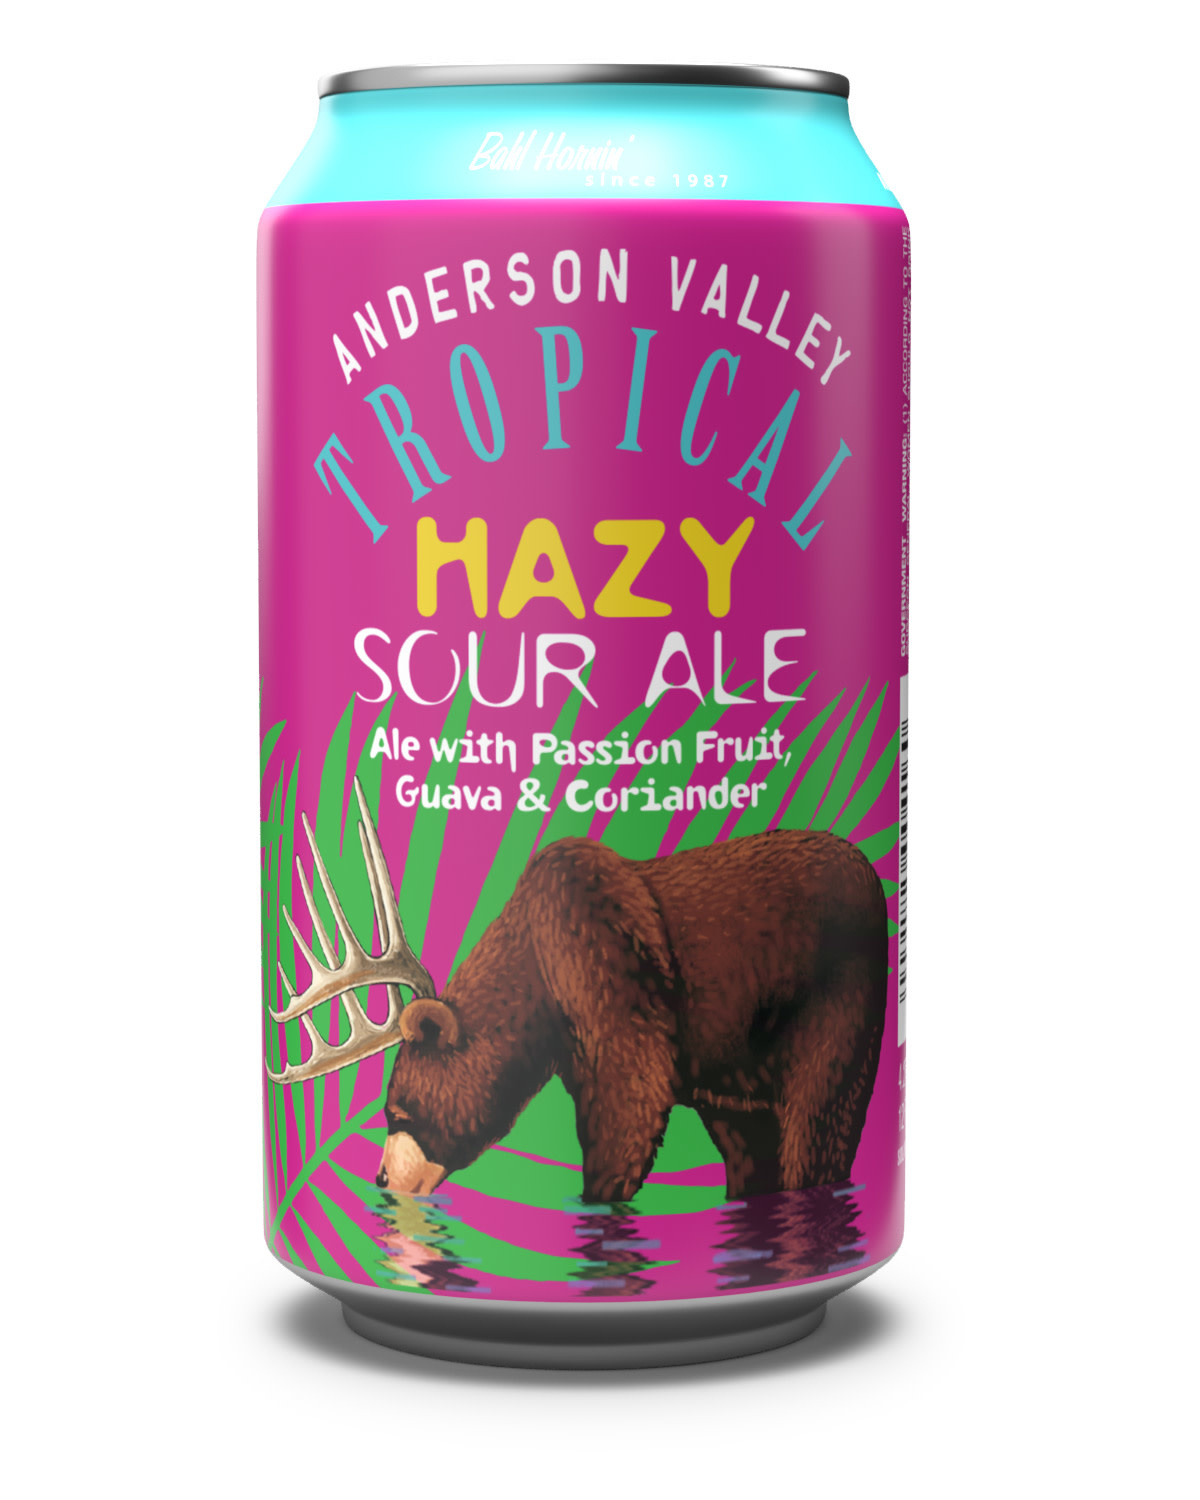 Anderson Valley Tropical Hazy Sour Ale ABV 4.2% 6 Pack